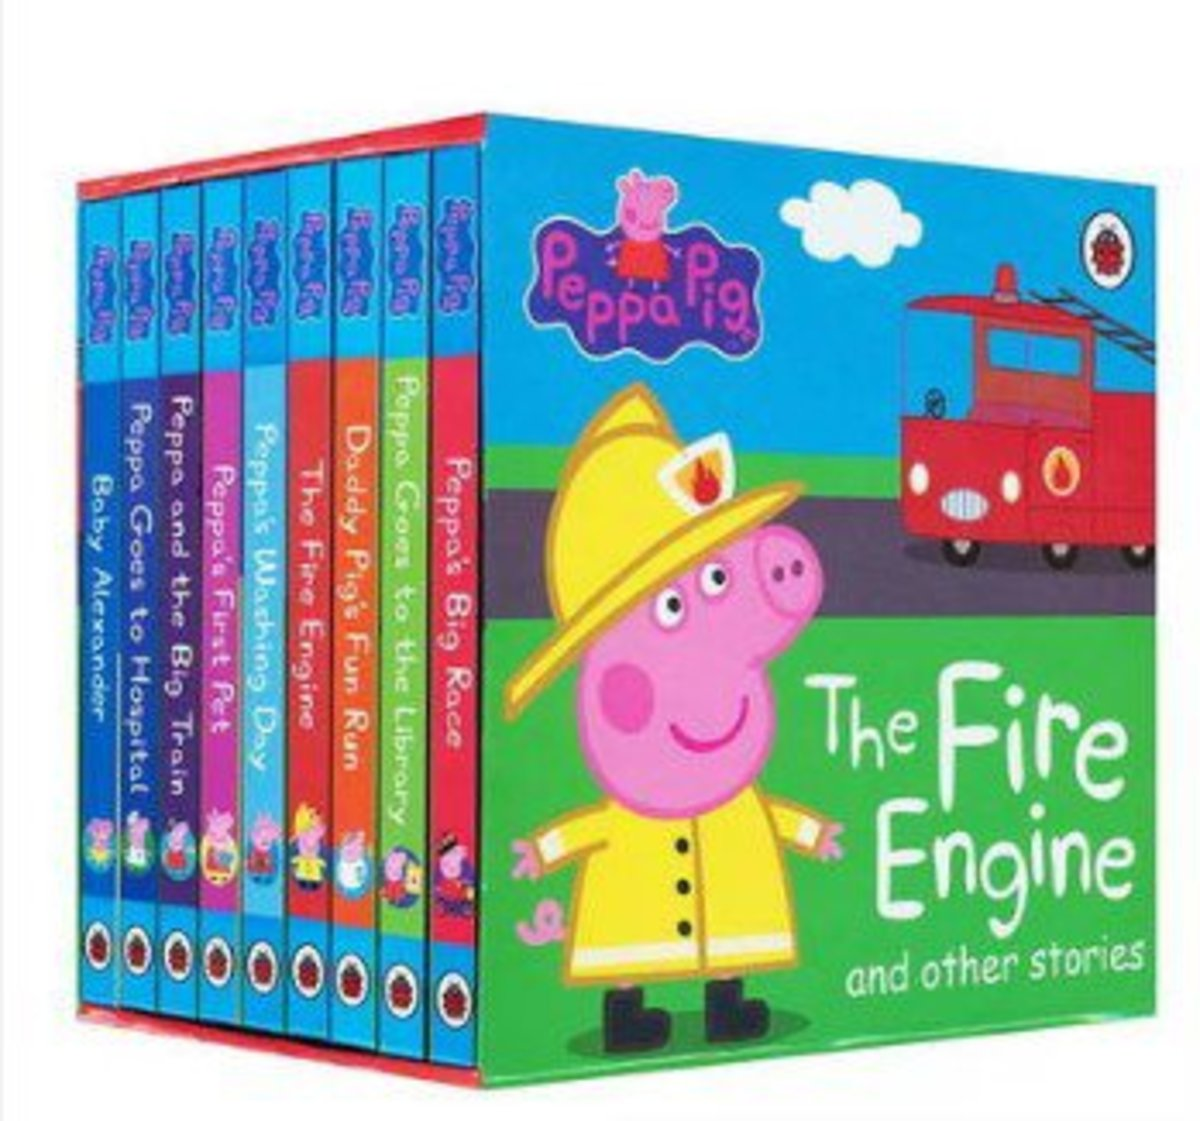 The Fire Engine and other Stories|English original story boxed 9 cardboard books|Parallel Imports